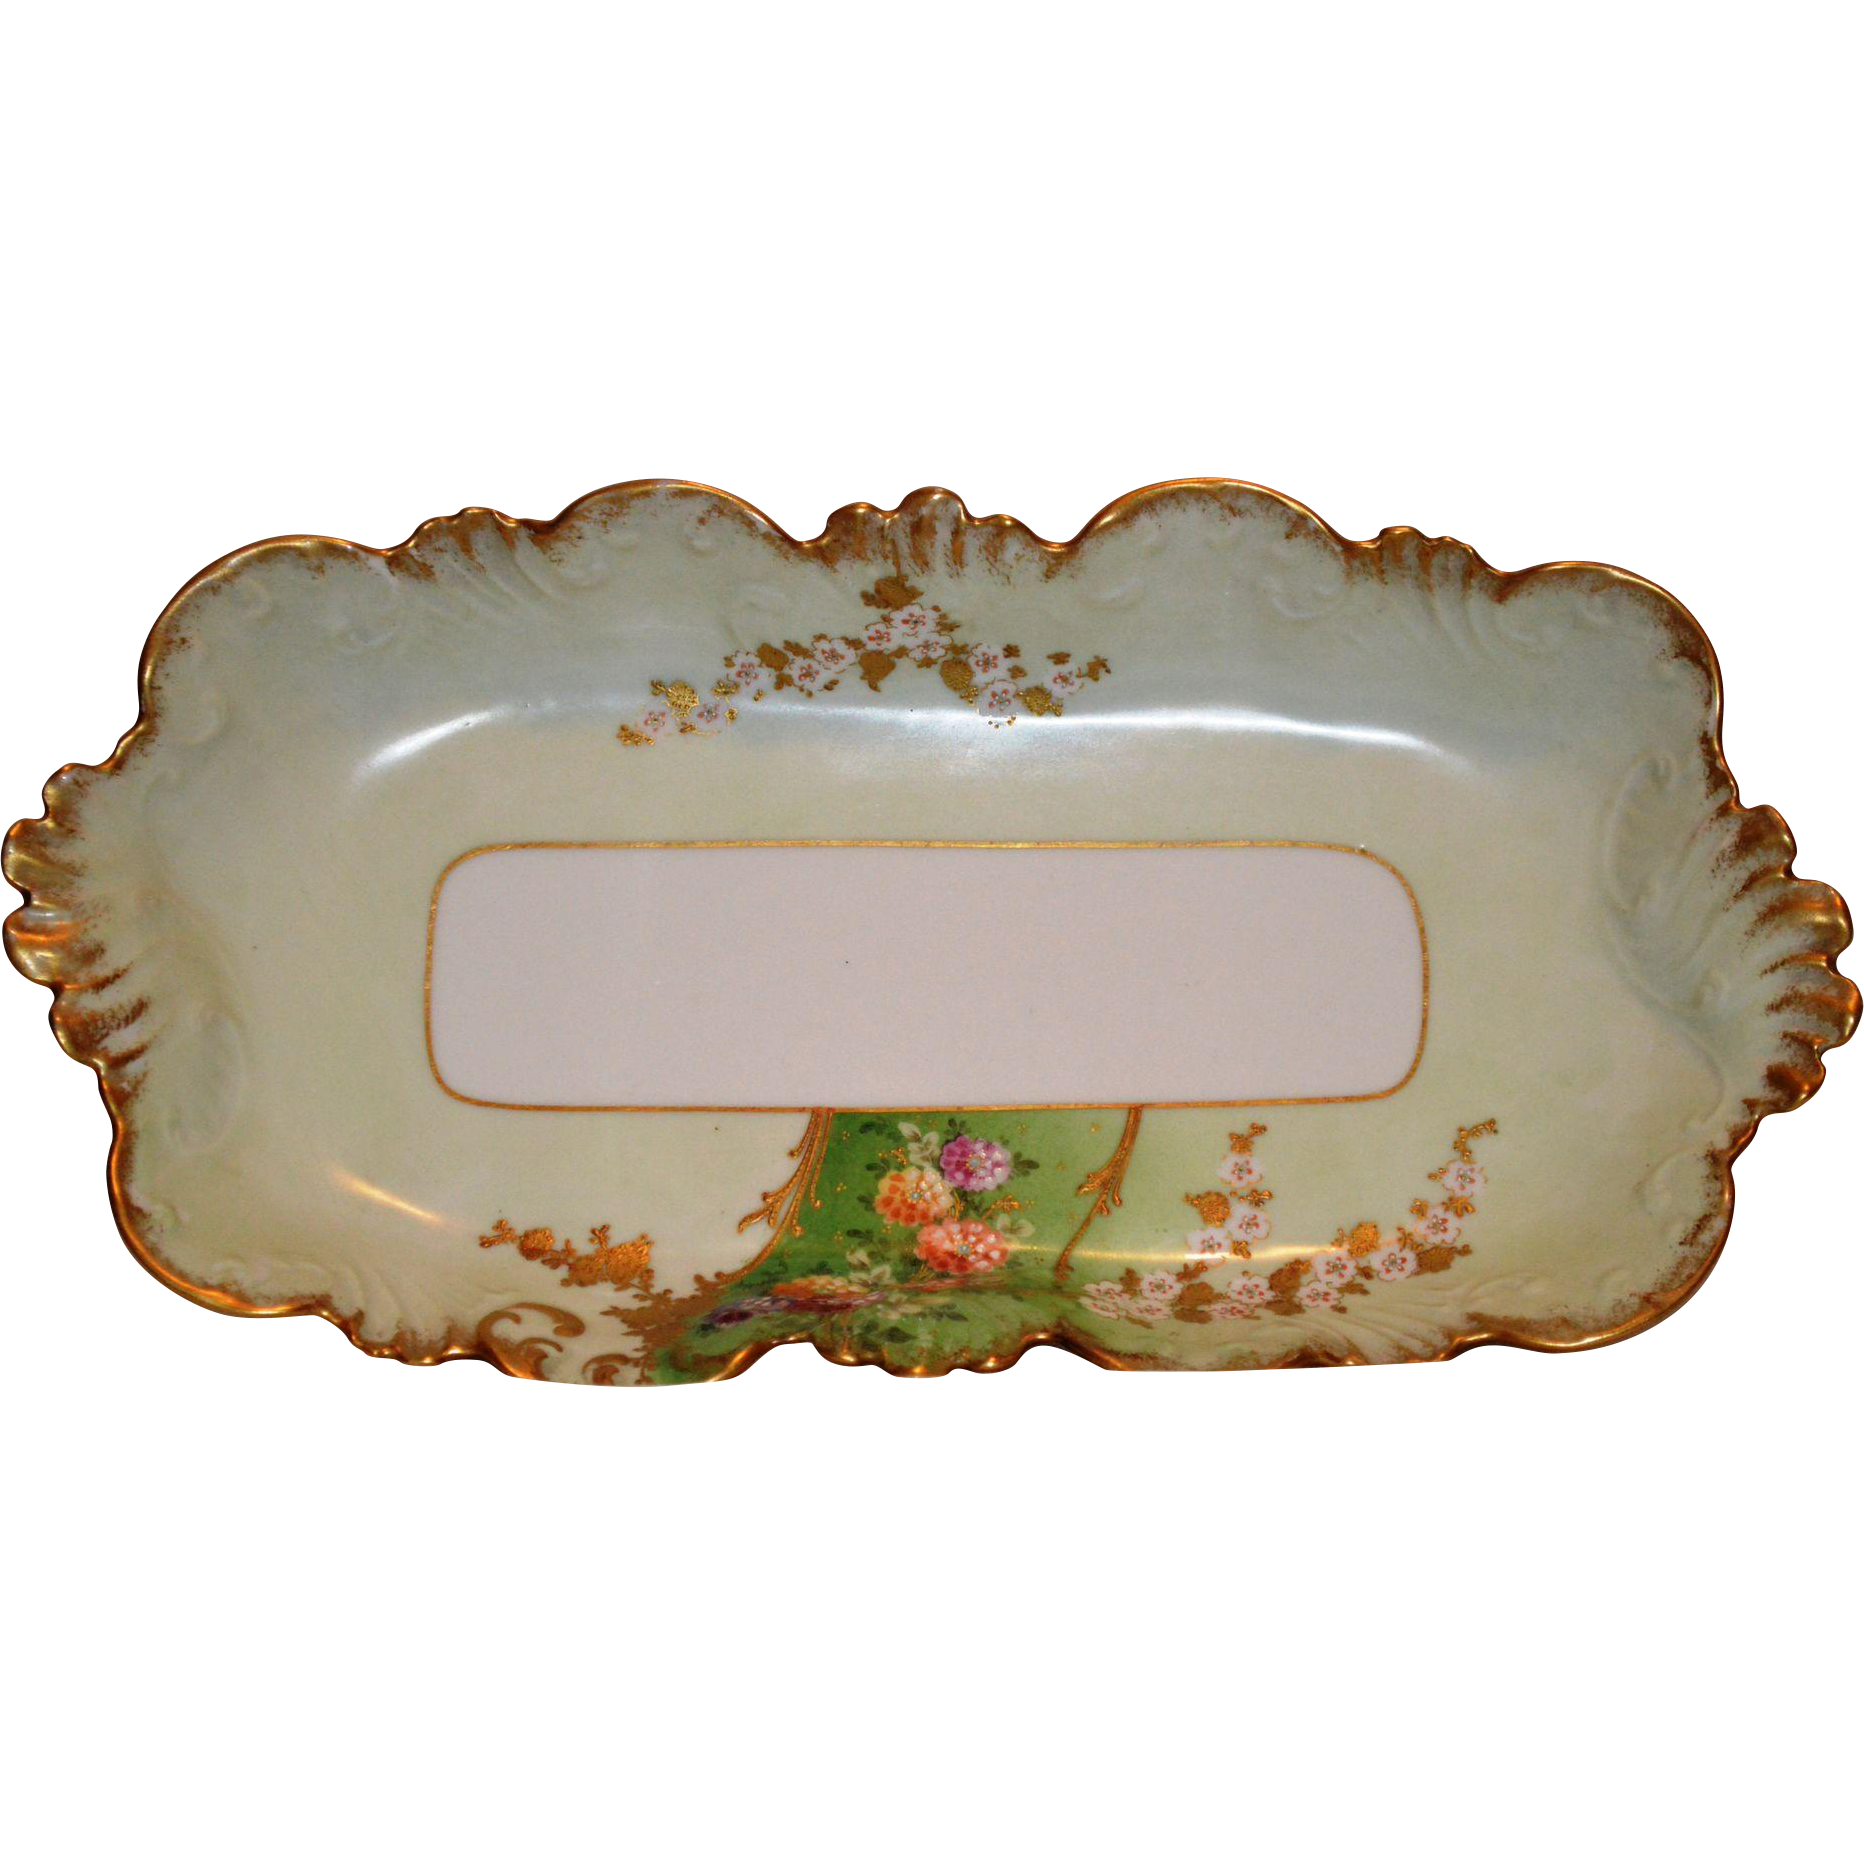 Exquisite  Ice Cream / Sandwich Dish ~ Limoges Porcelain ~ Hand Painted with Flowers and Gold Paste ~ Lavilette Limoges France1896-1905  Lazeyras Rosenfeld & Lehman Limoges France LR&L 1920's